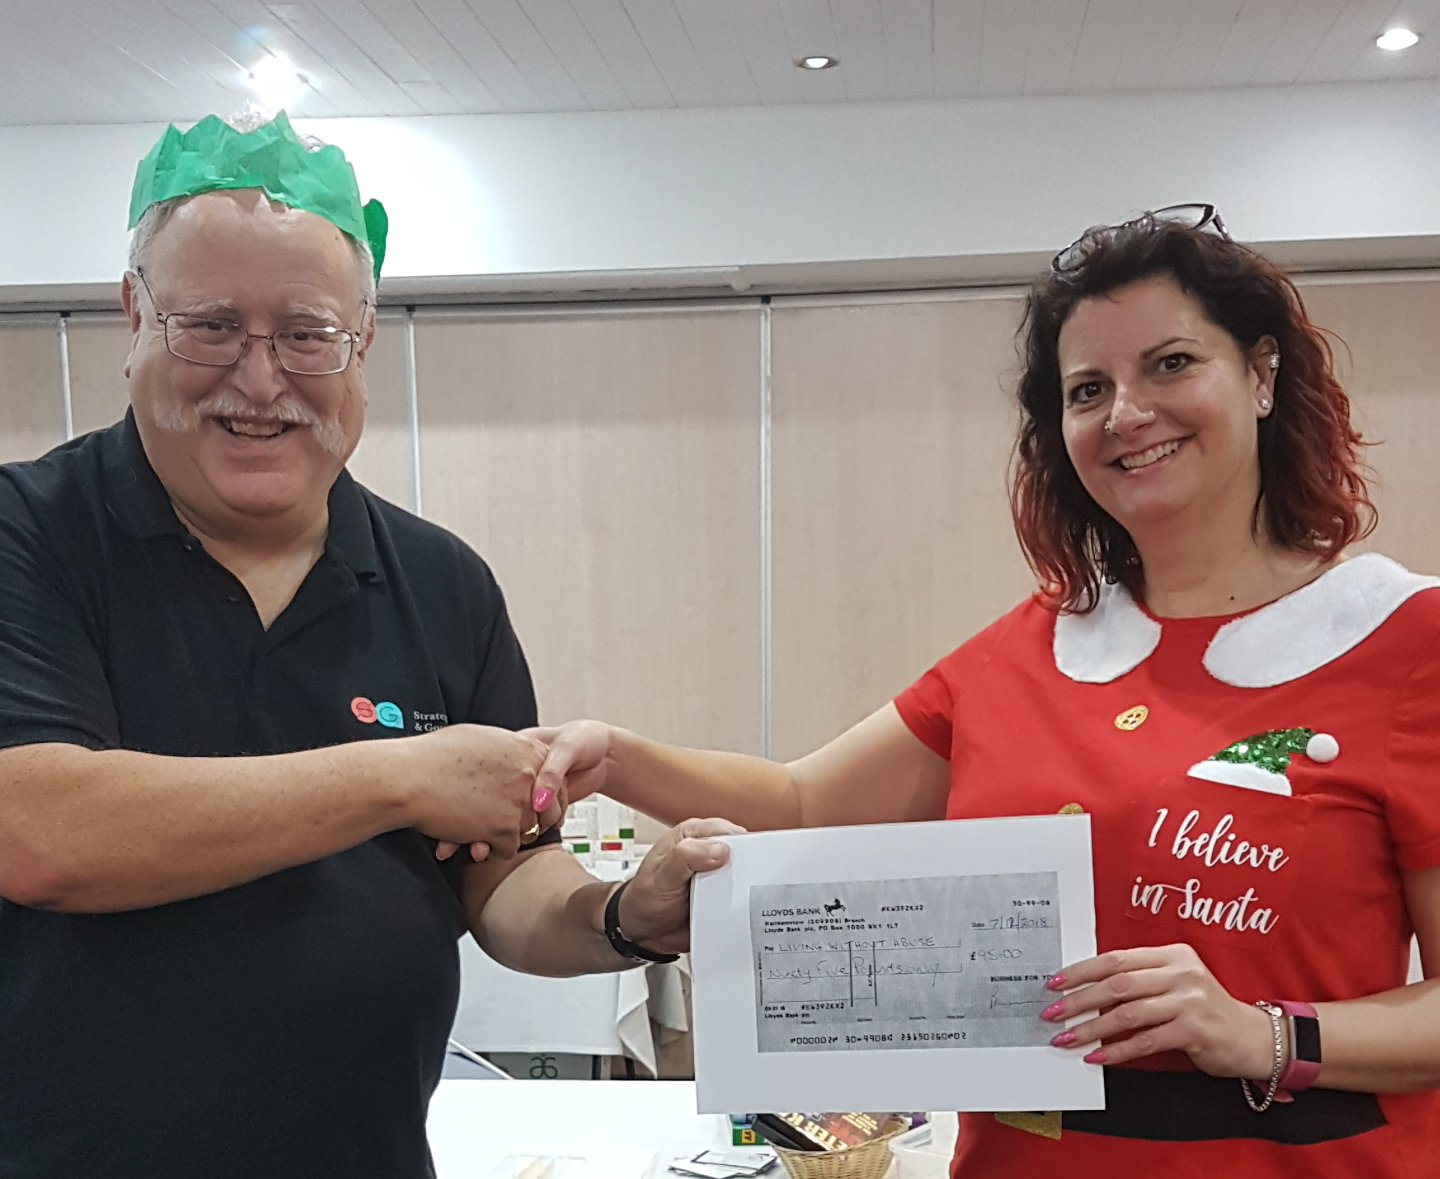 Local Business Network raises money for local and small national charity